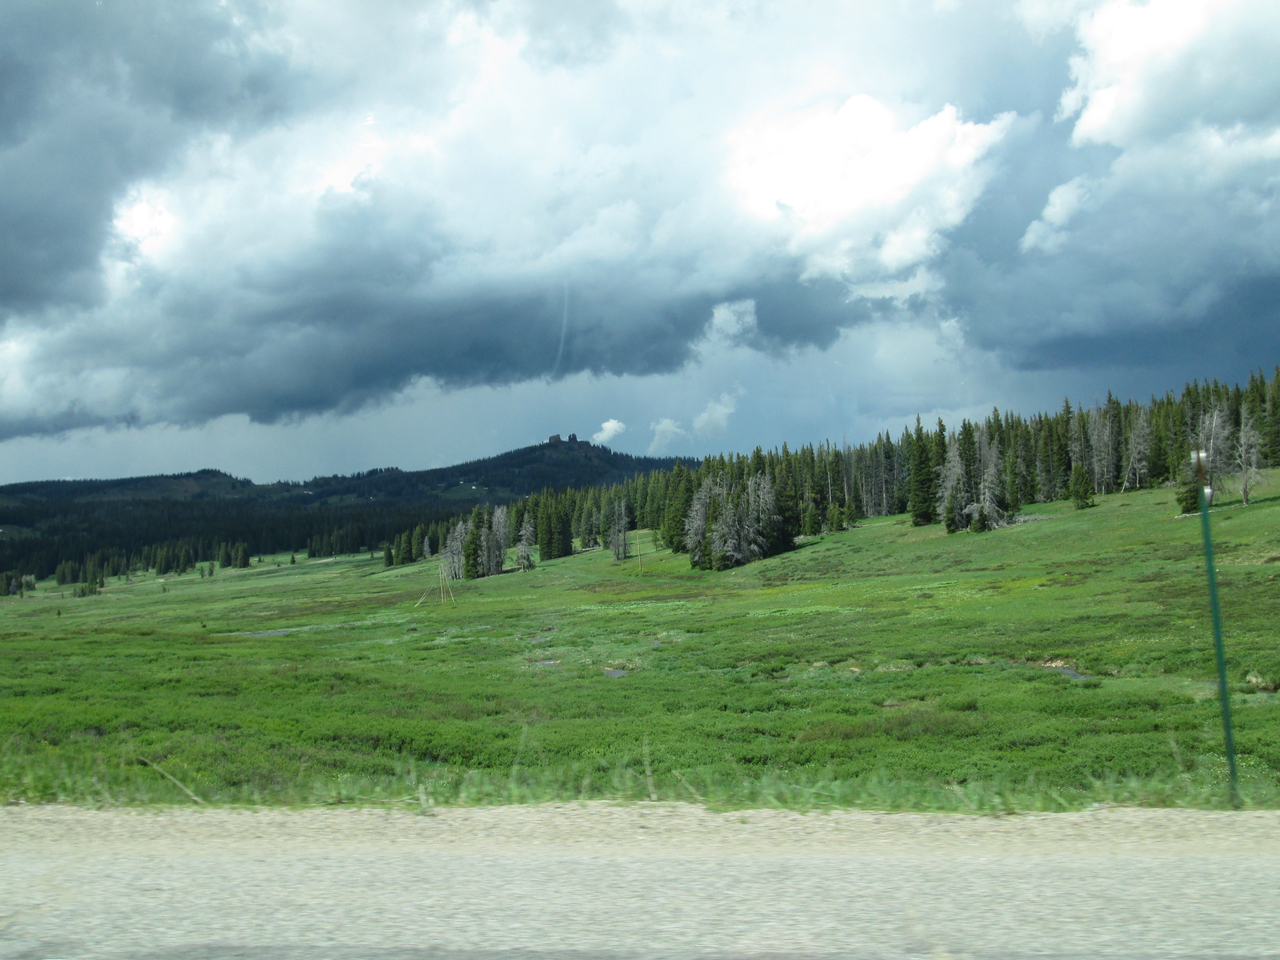 Snowcover on the Rabbit Ears Pass plateau on June 16, 2015 was limited to very small, scattered patches under trees on north-facing slopes.